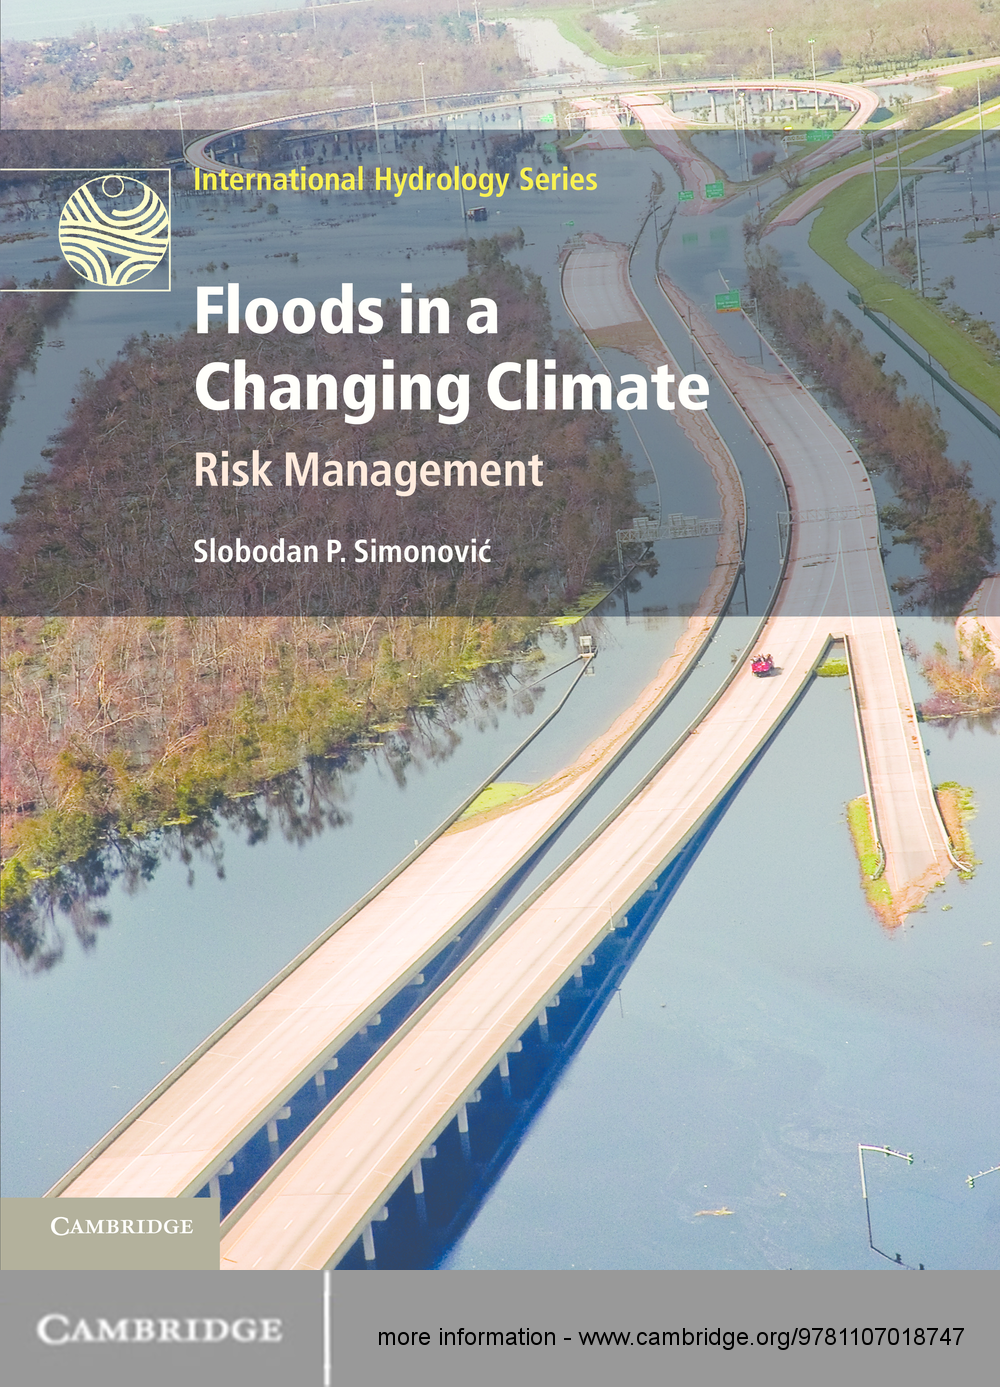 Floods in a Changing Climate Risk Management